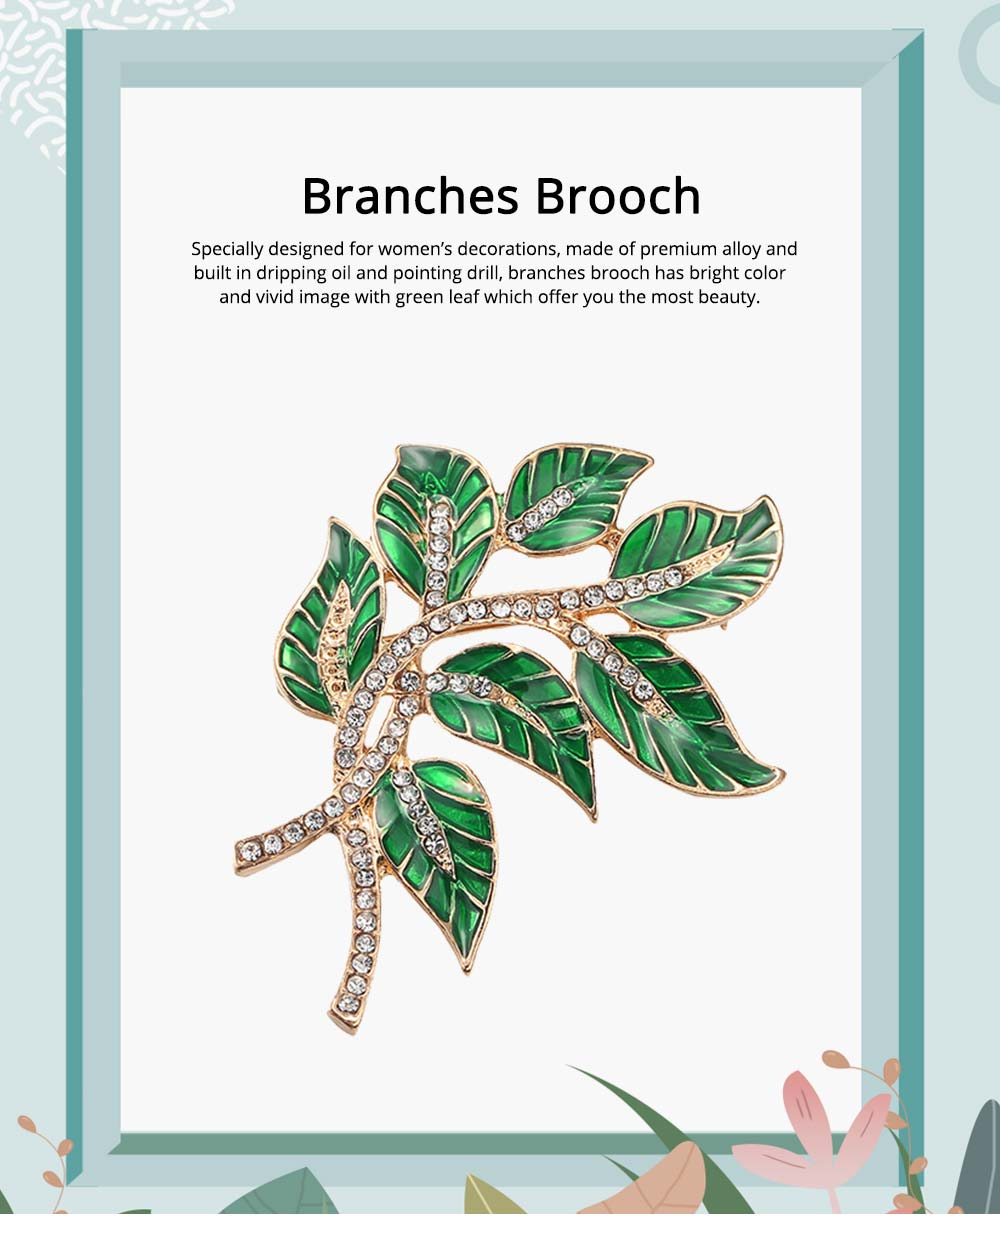 Alloy Diamond Brooch Pins, Women's Corsage with Dripping Oil Enamel Design 0